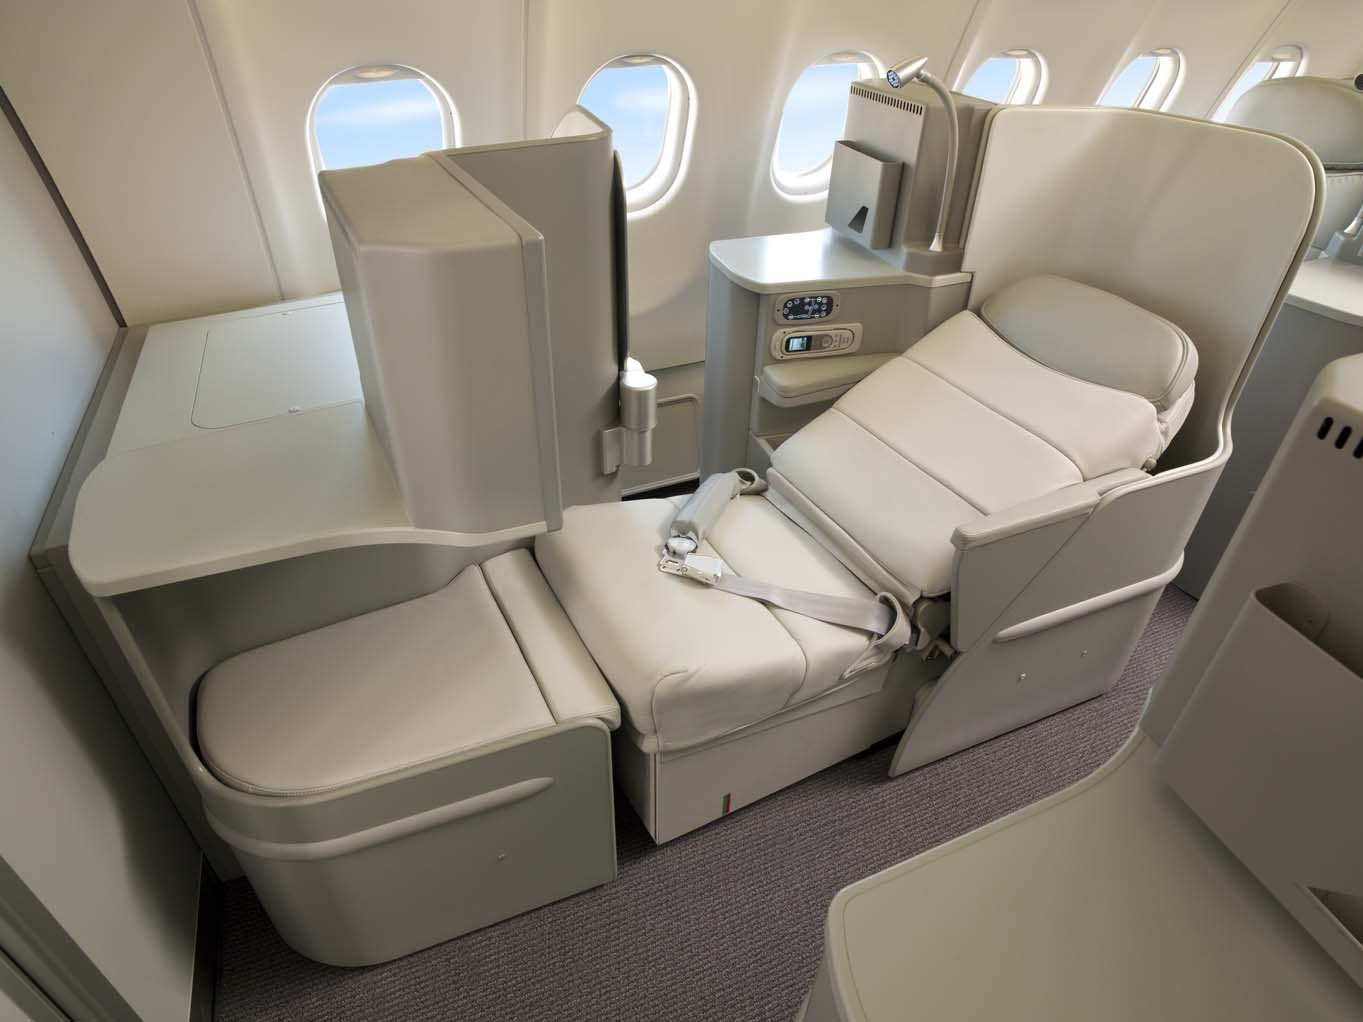 Best Ways to Use AMEX Points: Transfer to Delta for Alitalia Business Class